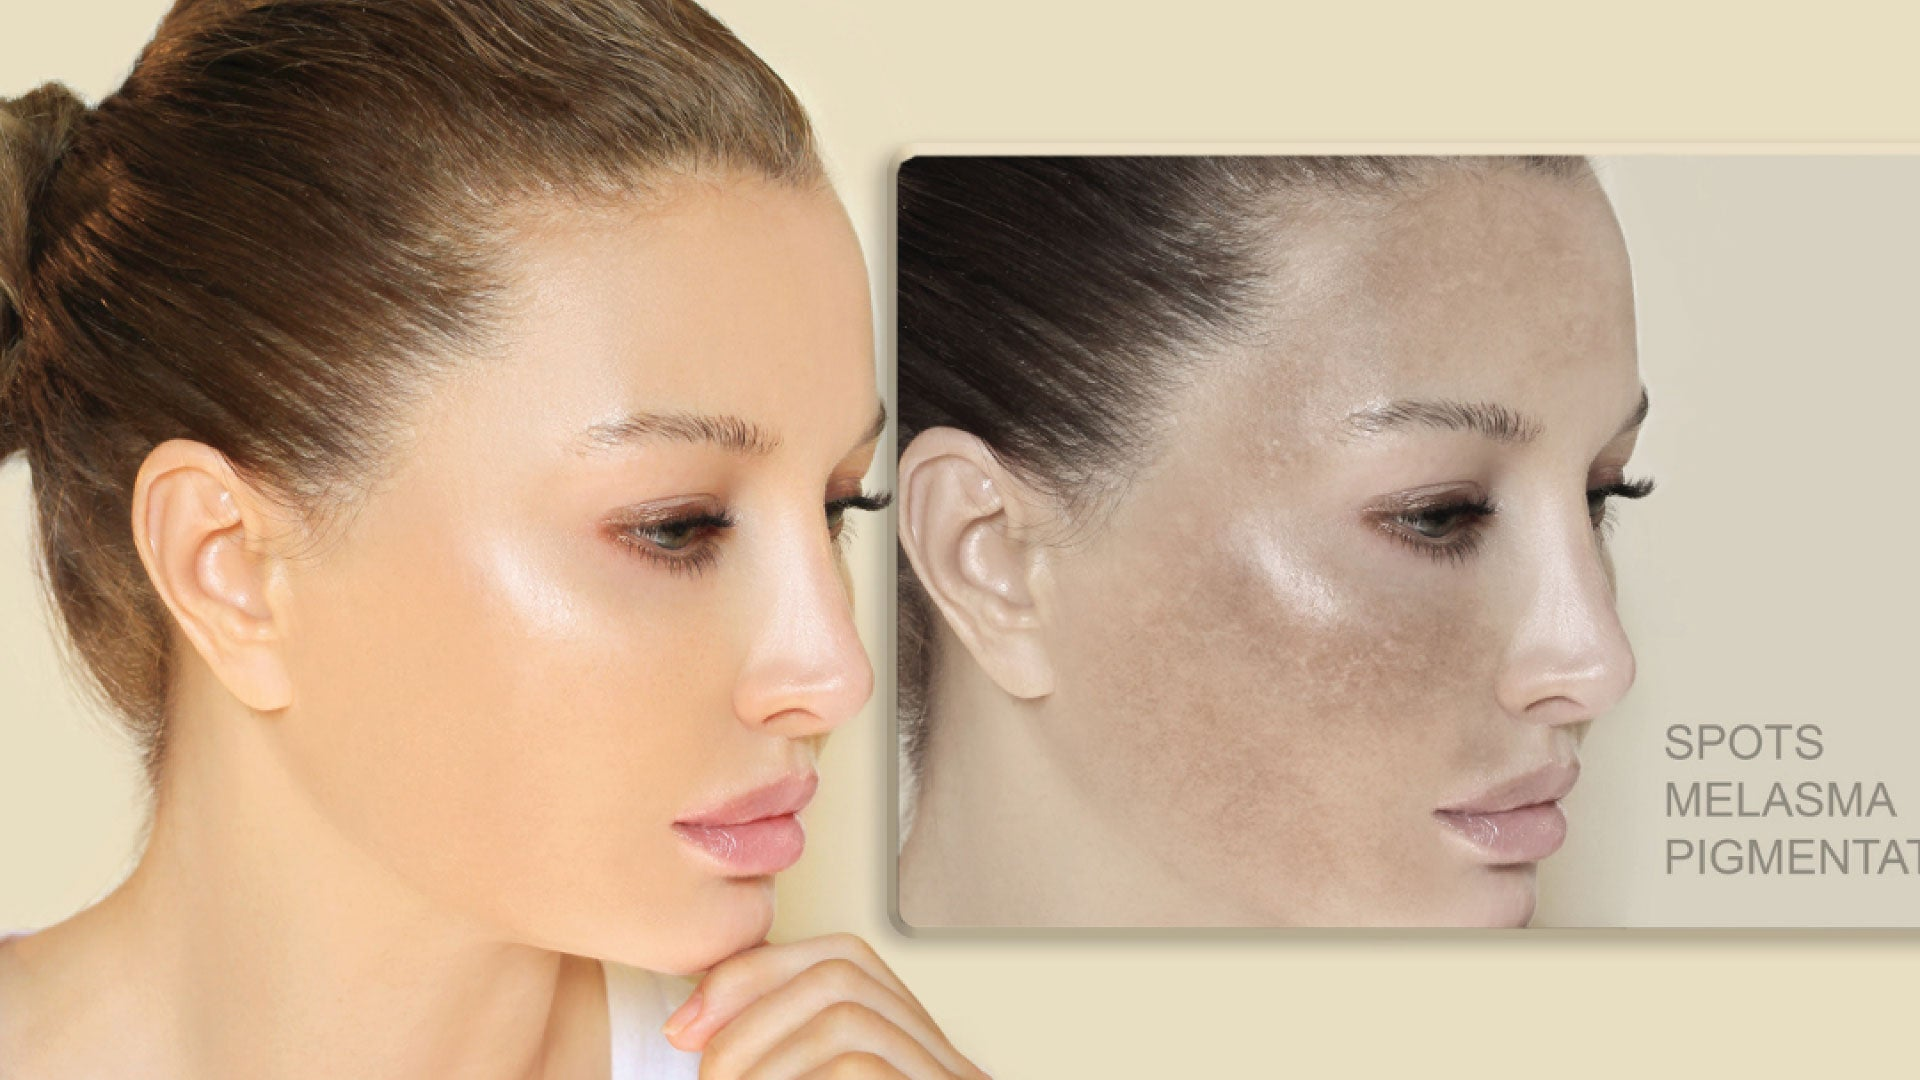 Hyperpigmentation: How To Recognize It & Reverse It